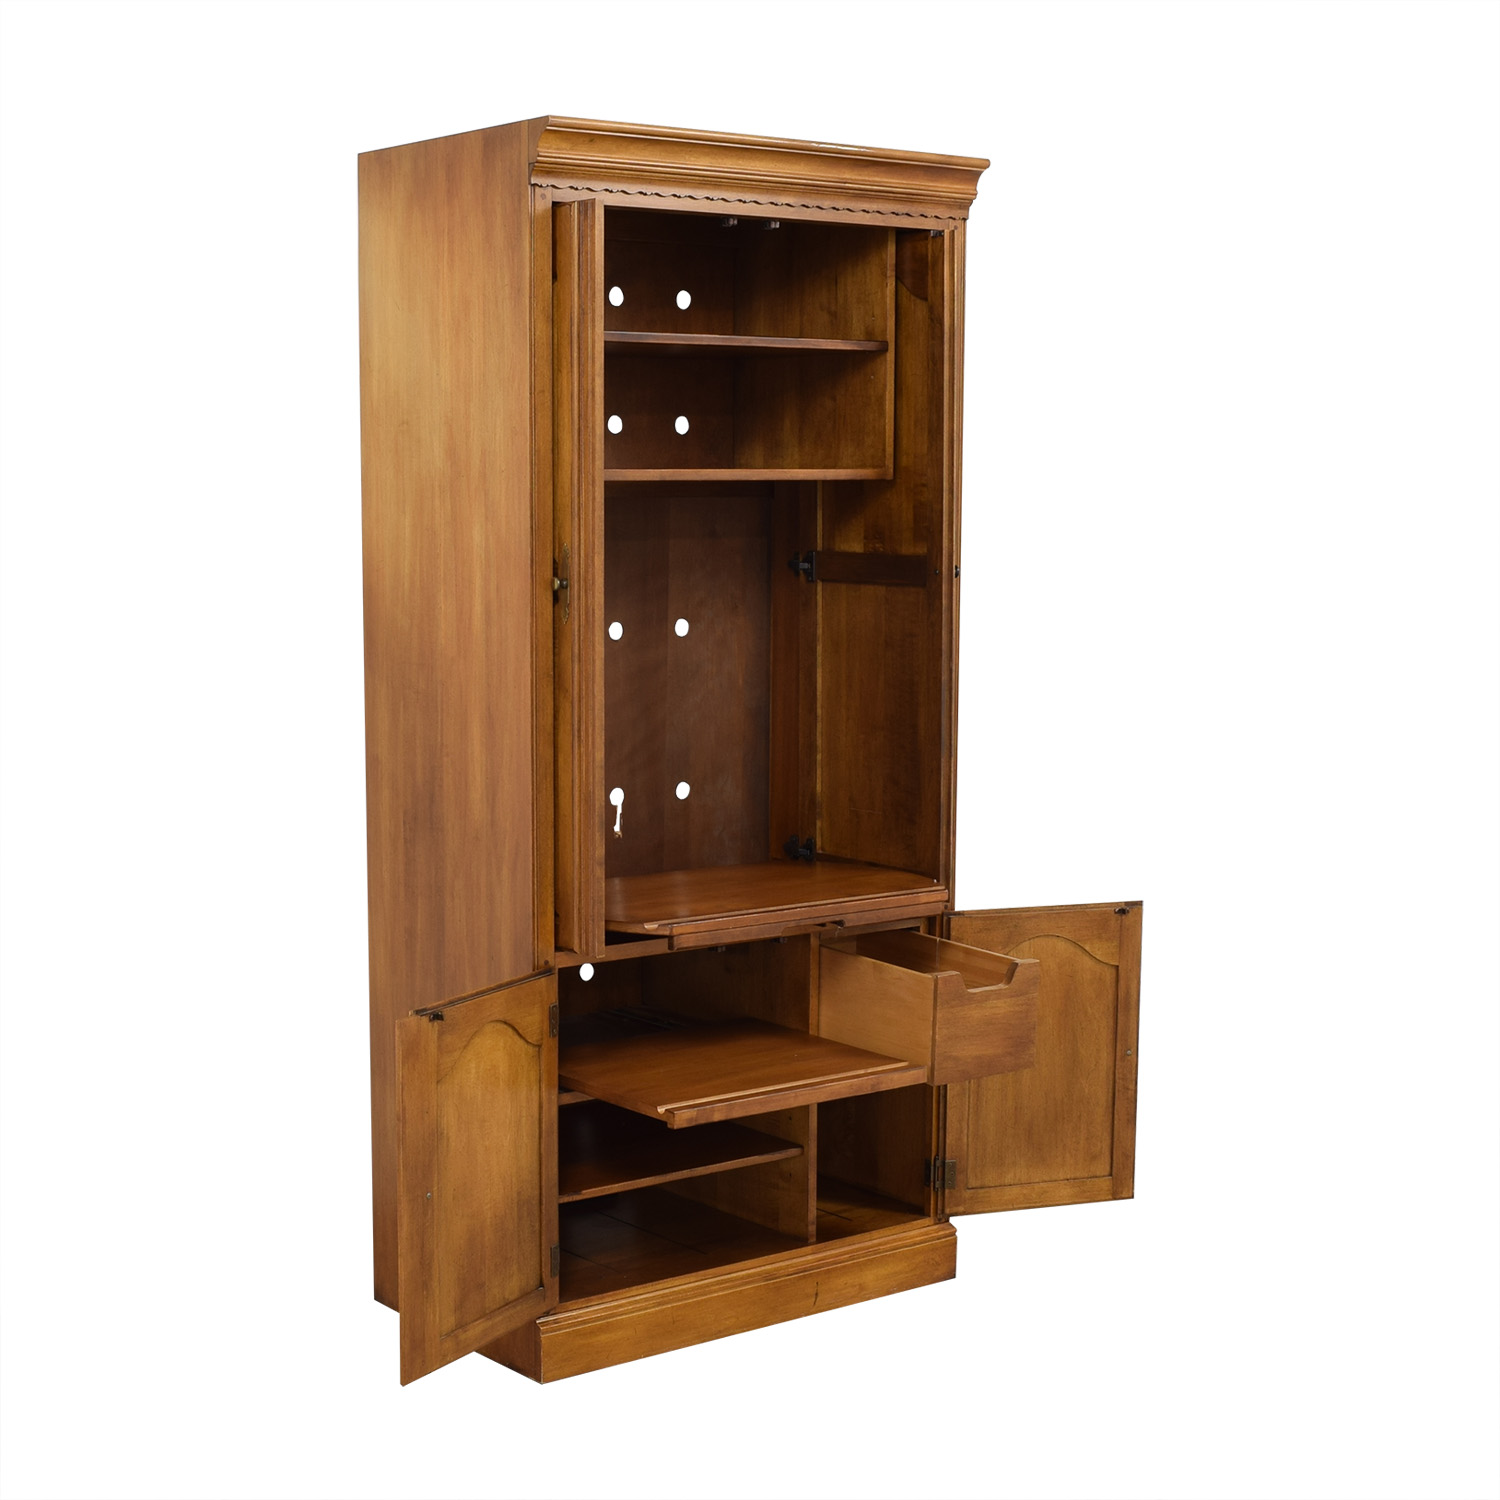 shop Ethan Allen Ethan Allen Entertainment Center online